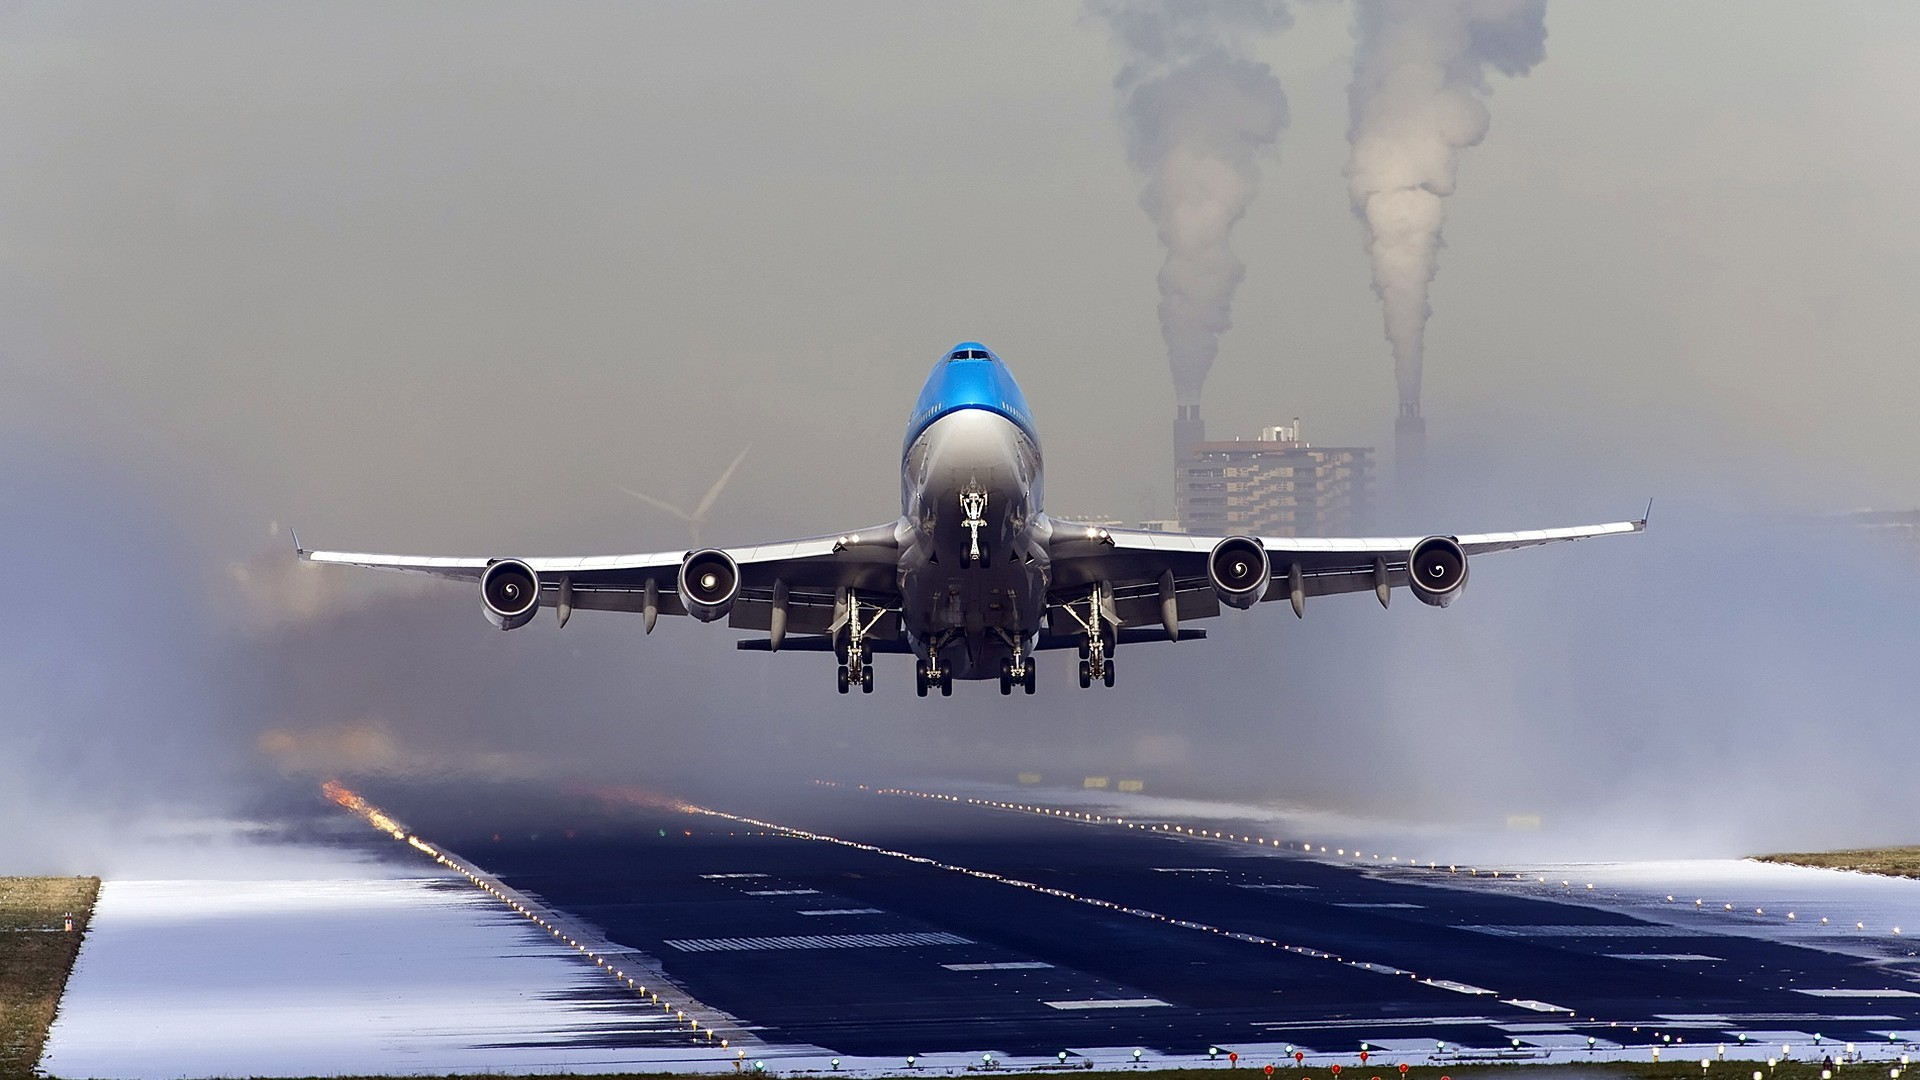 1920x1080 - Boeing 747 Wallpapers 14